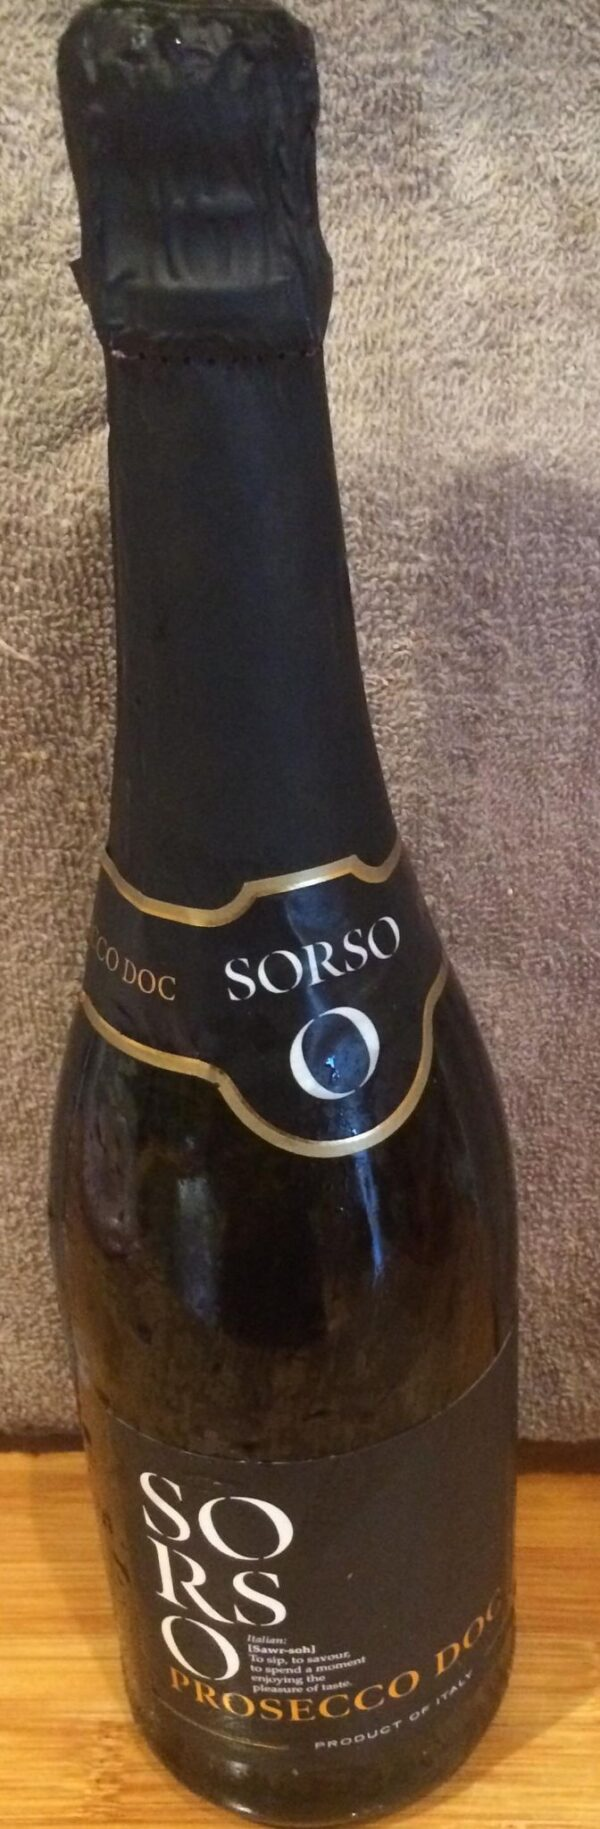 Bottle of Prosecco